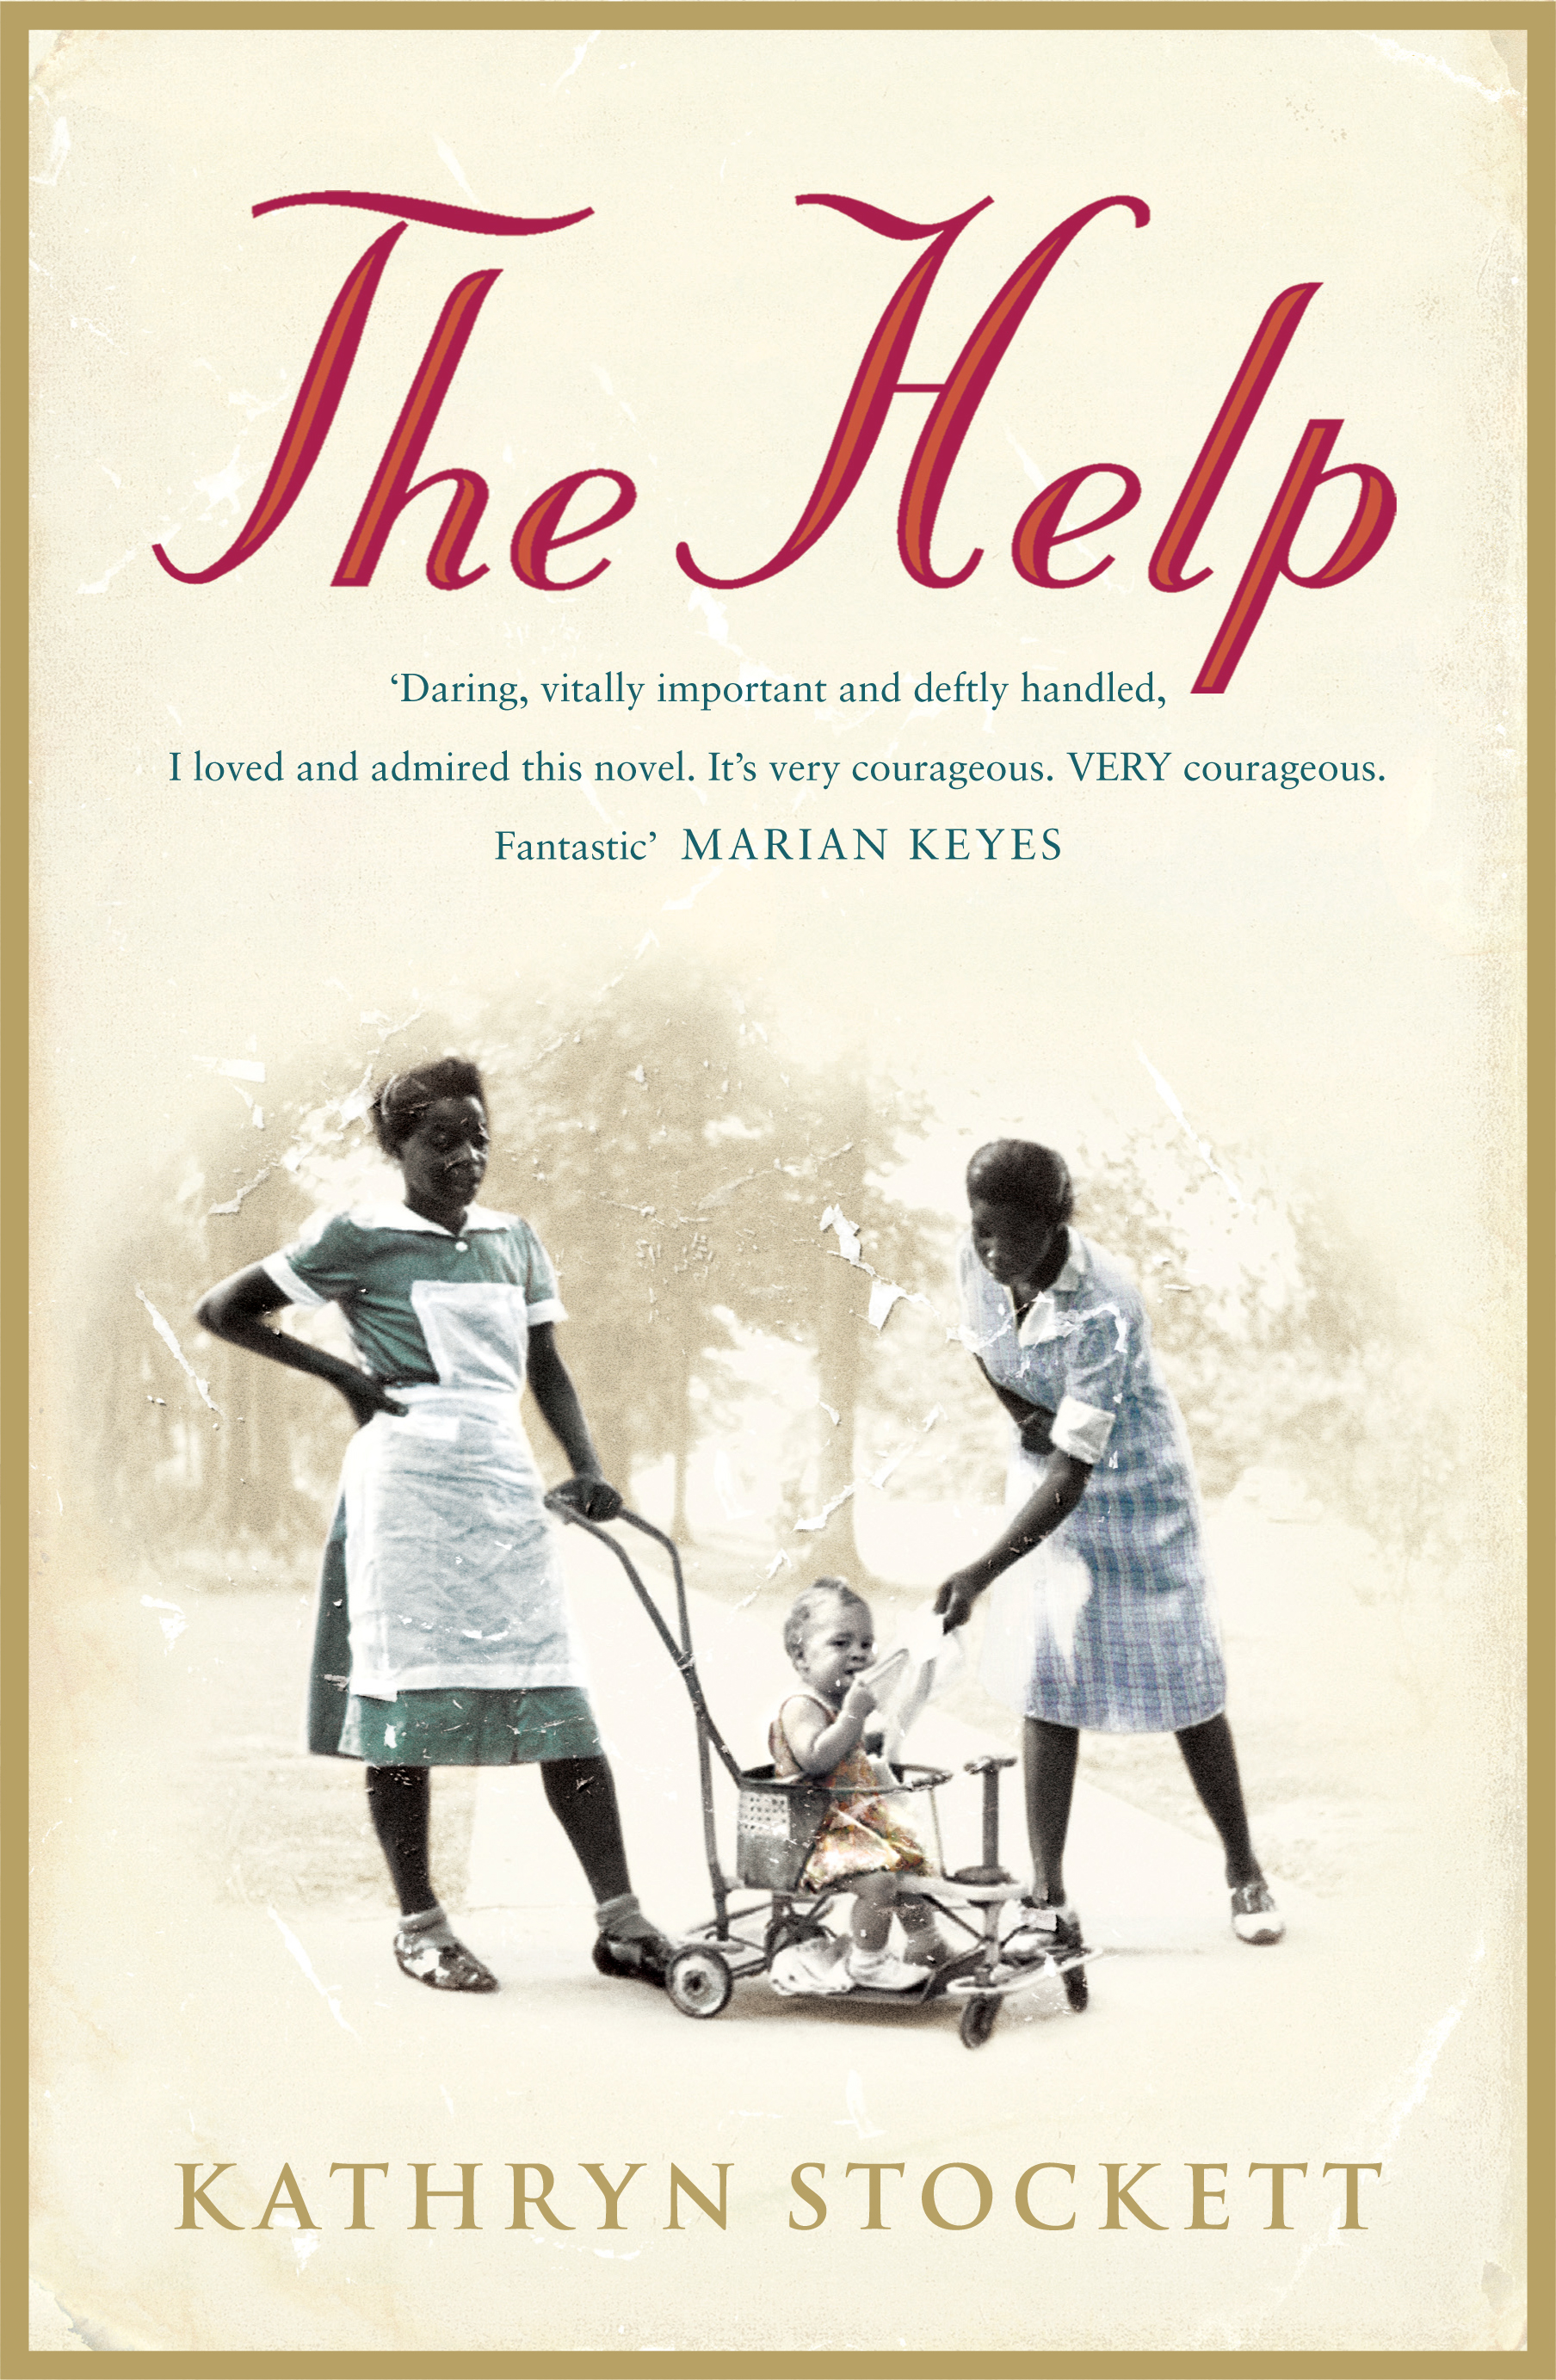 help katherine stockett Kathryn stockett is an american novelist she is known for her 2009 debut novel, the help, which is about african-american maids working in white households in jackson, mississippi, during the 1960s.